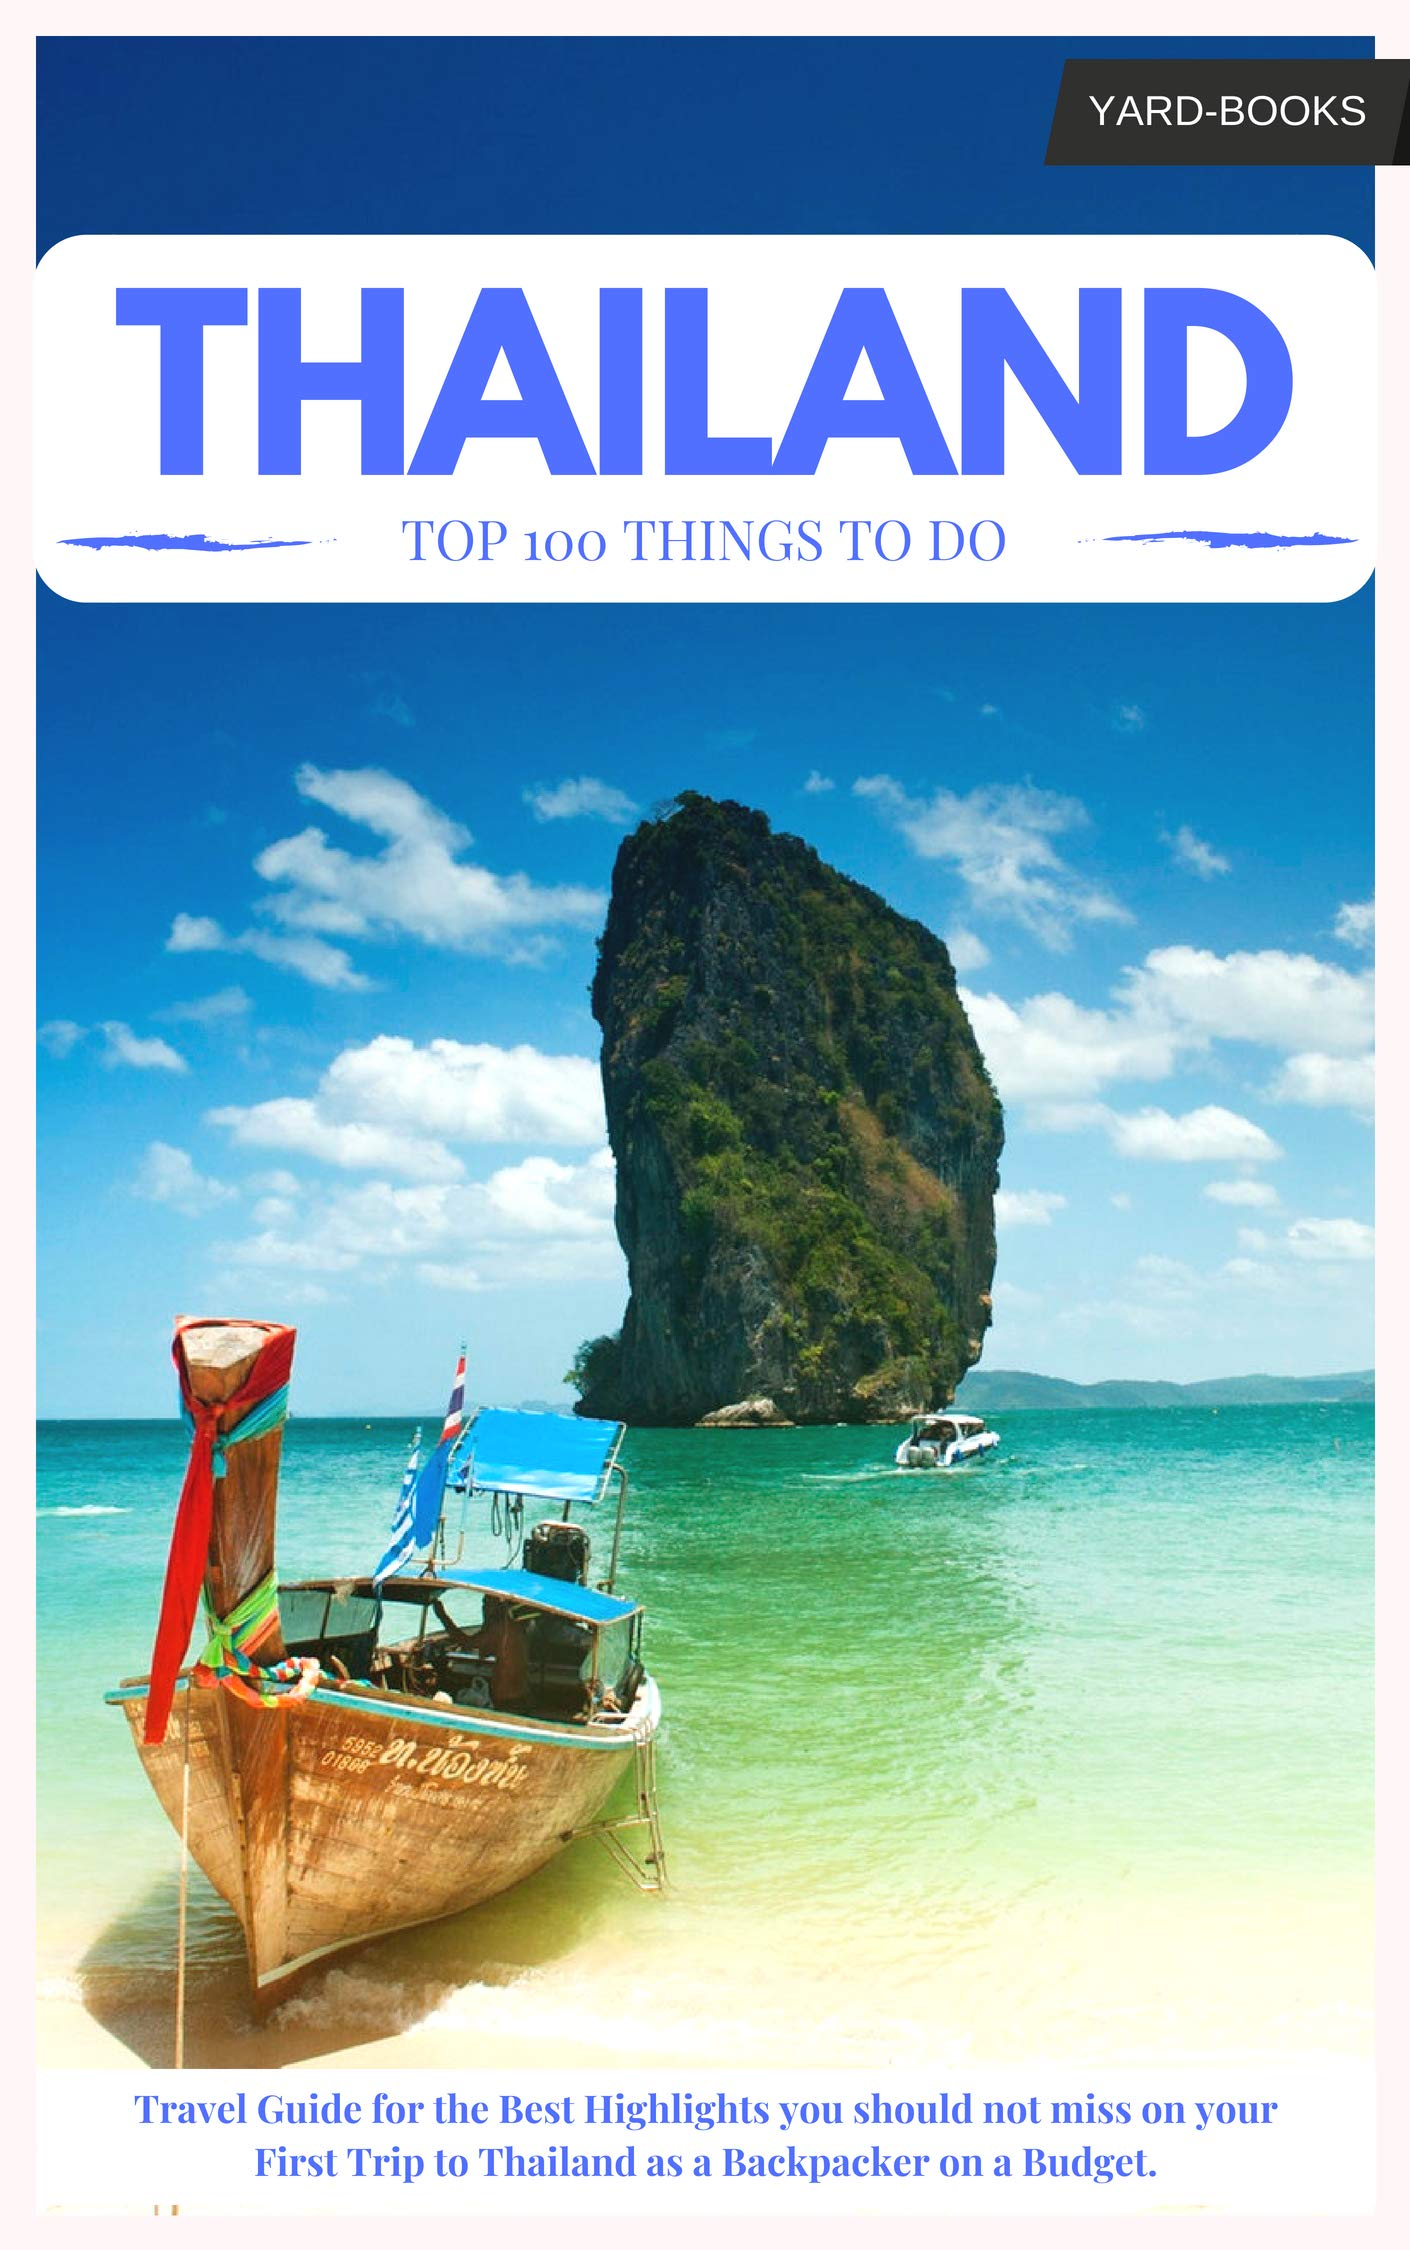 Thailand Travel Guide: The Best 100 Things to Do & Highlights    you should not miss on your First Trip to Thailand as a Backpacker on a Budget. (Backpacking Thailand Book 2) (English Edition)